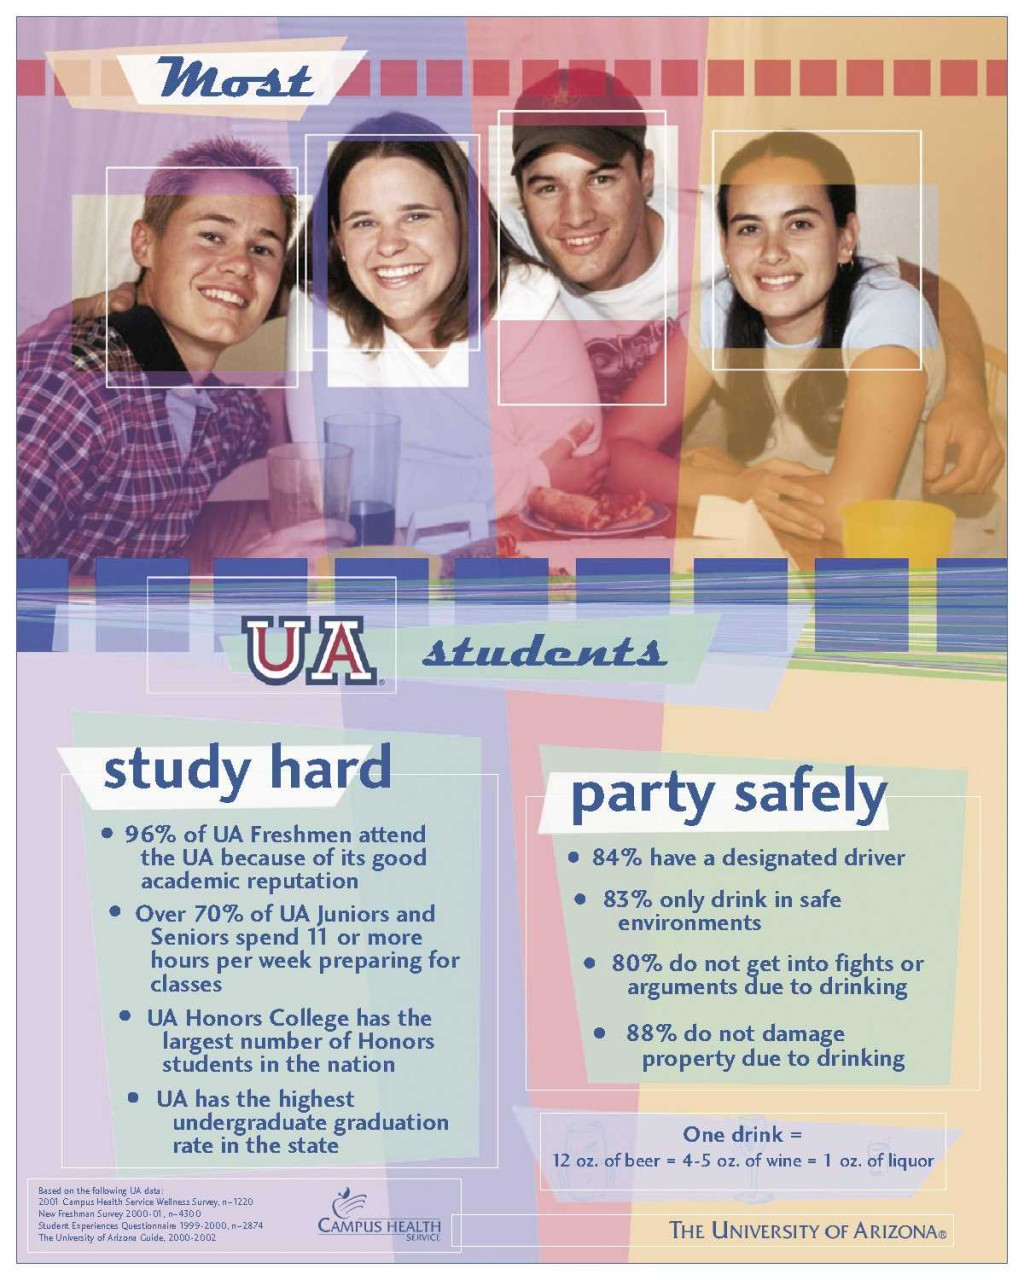 022 Essay Example Uamostposter2 Breaking Social Awesome Norms Free Conclusion Large